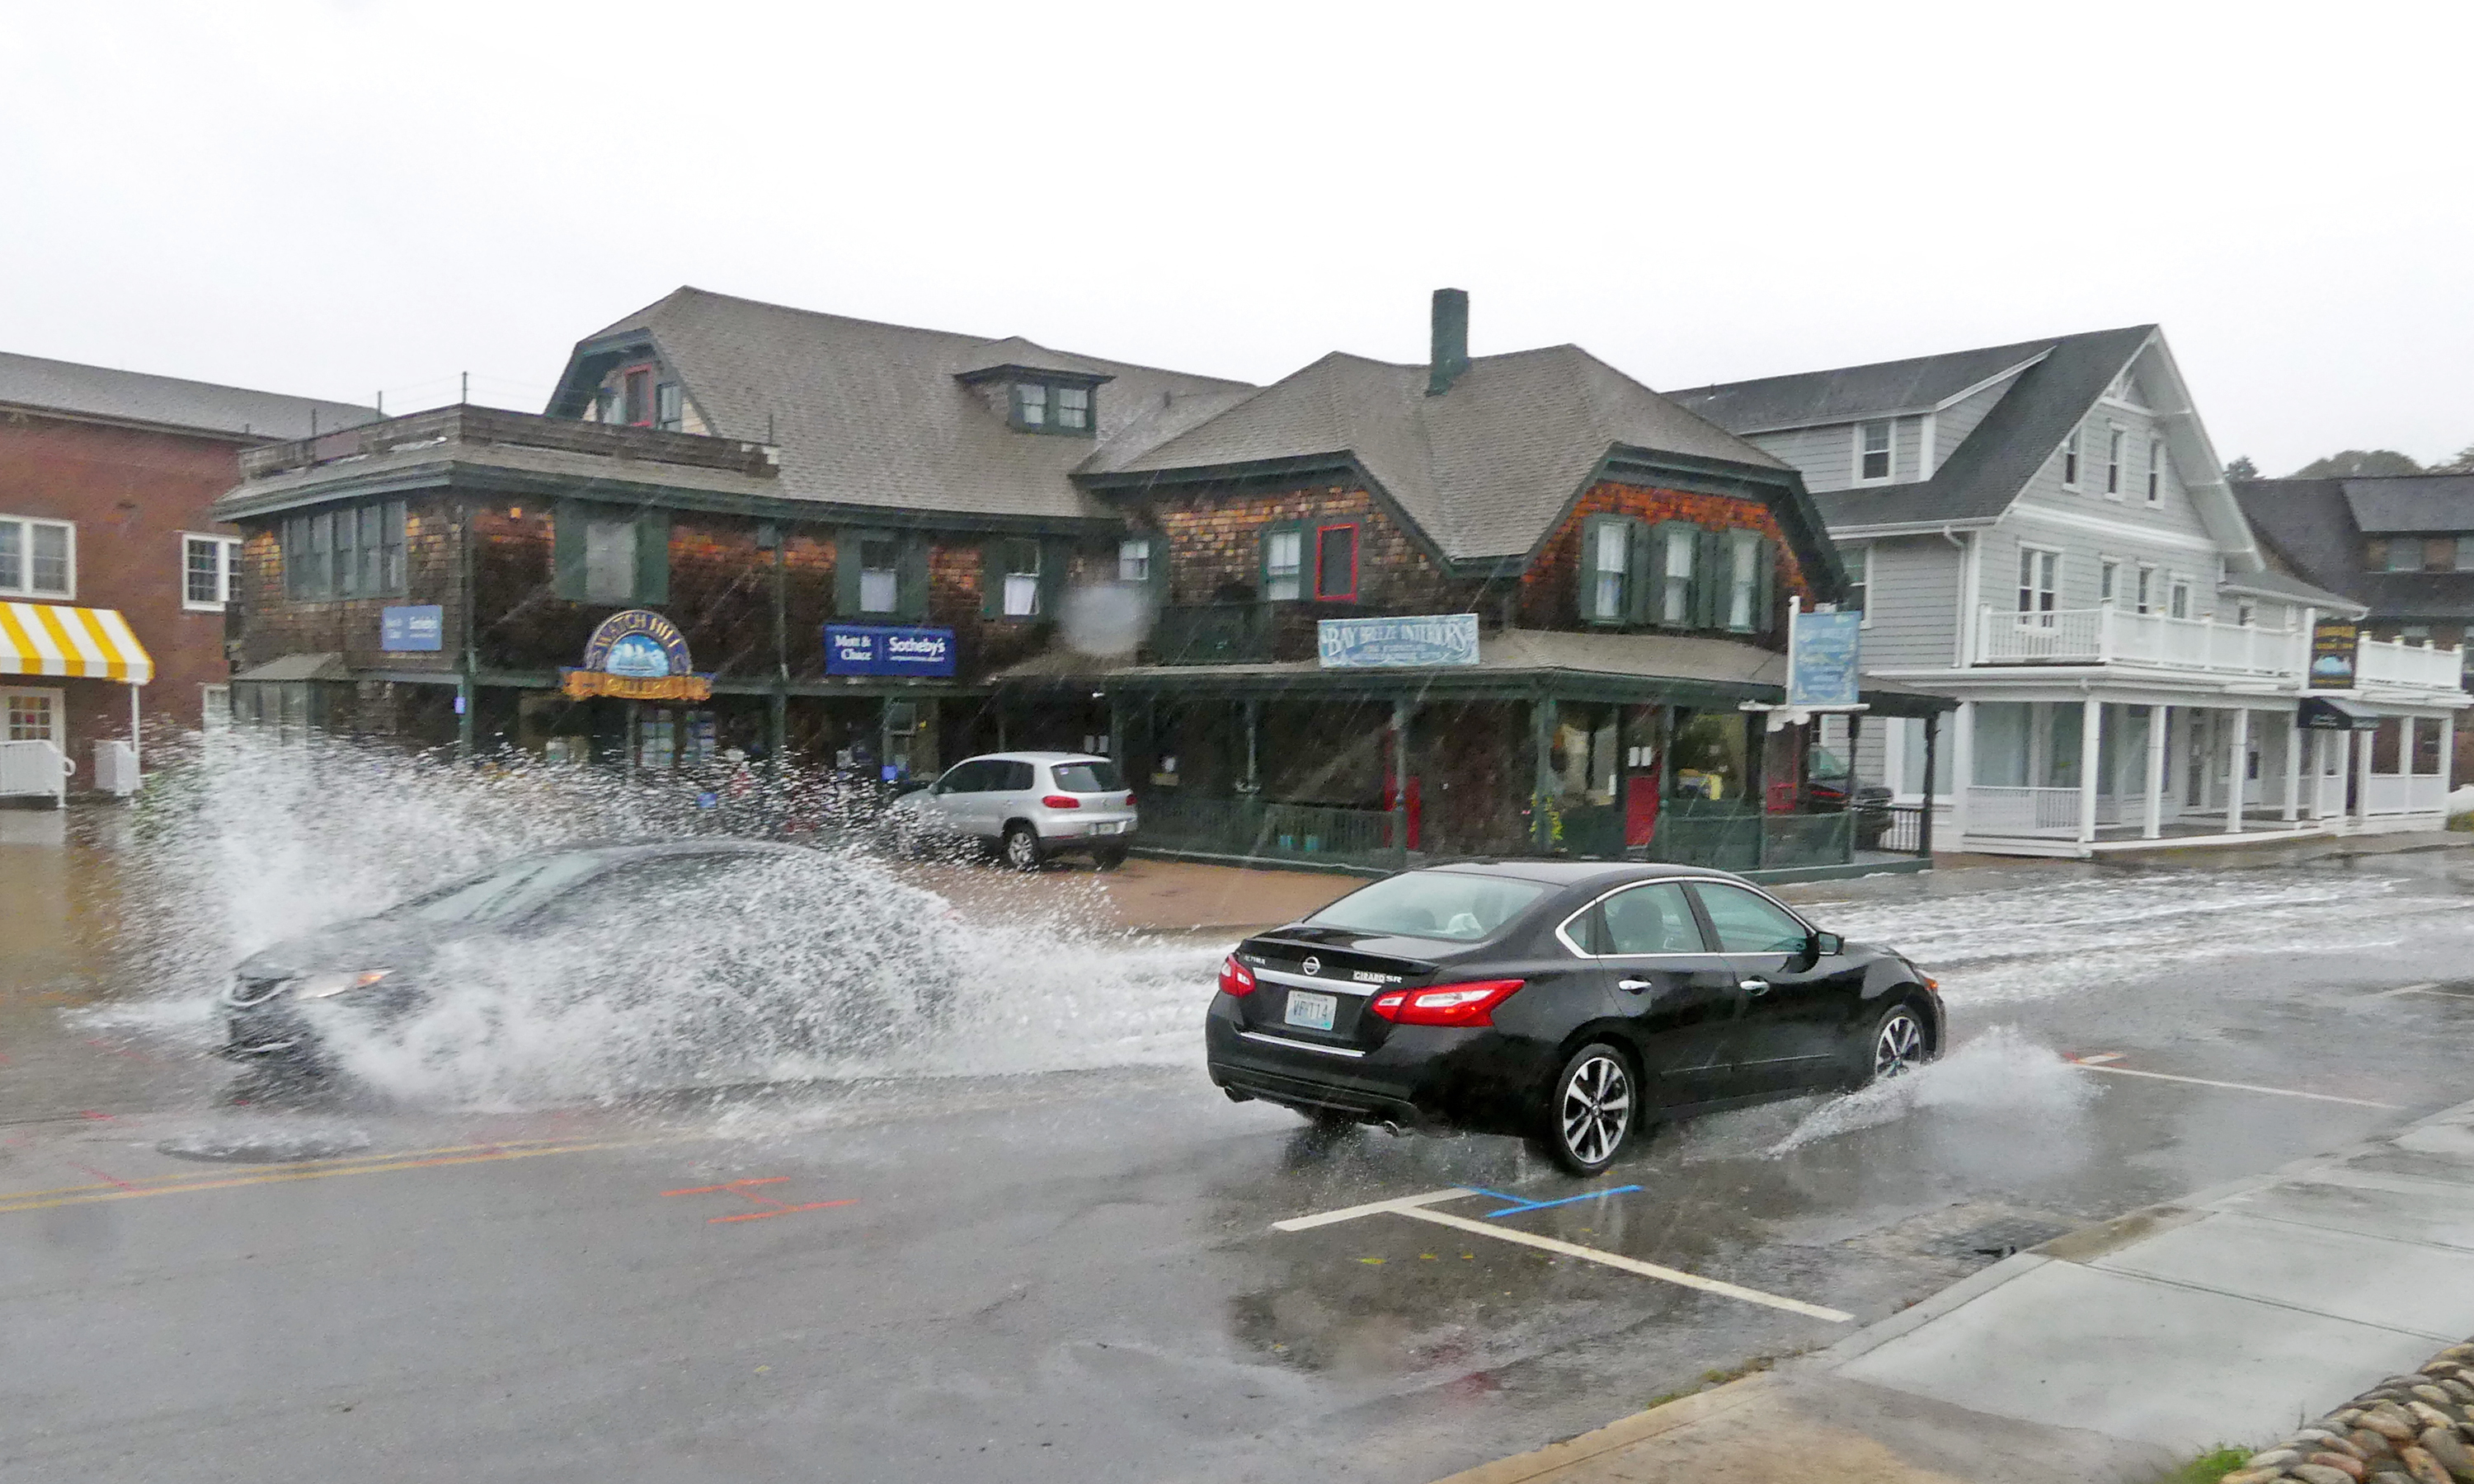 Storm surge effects in Westerly, RI